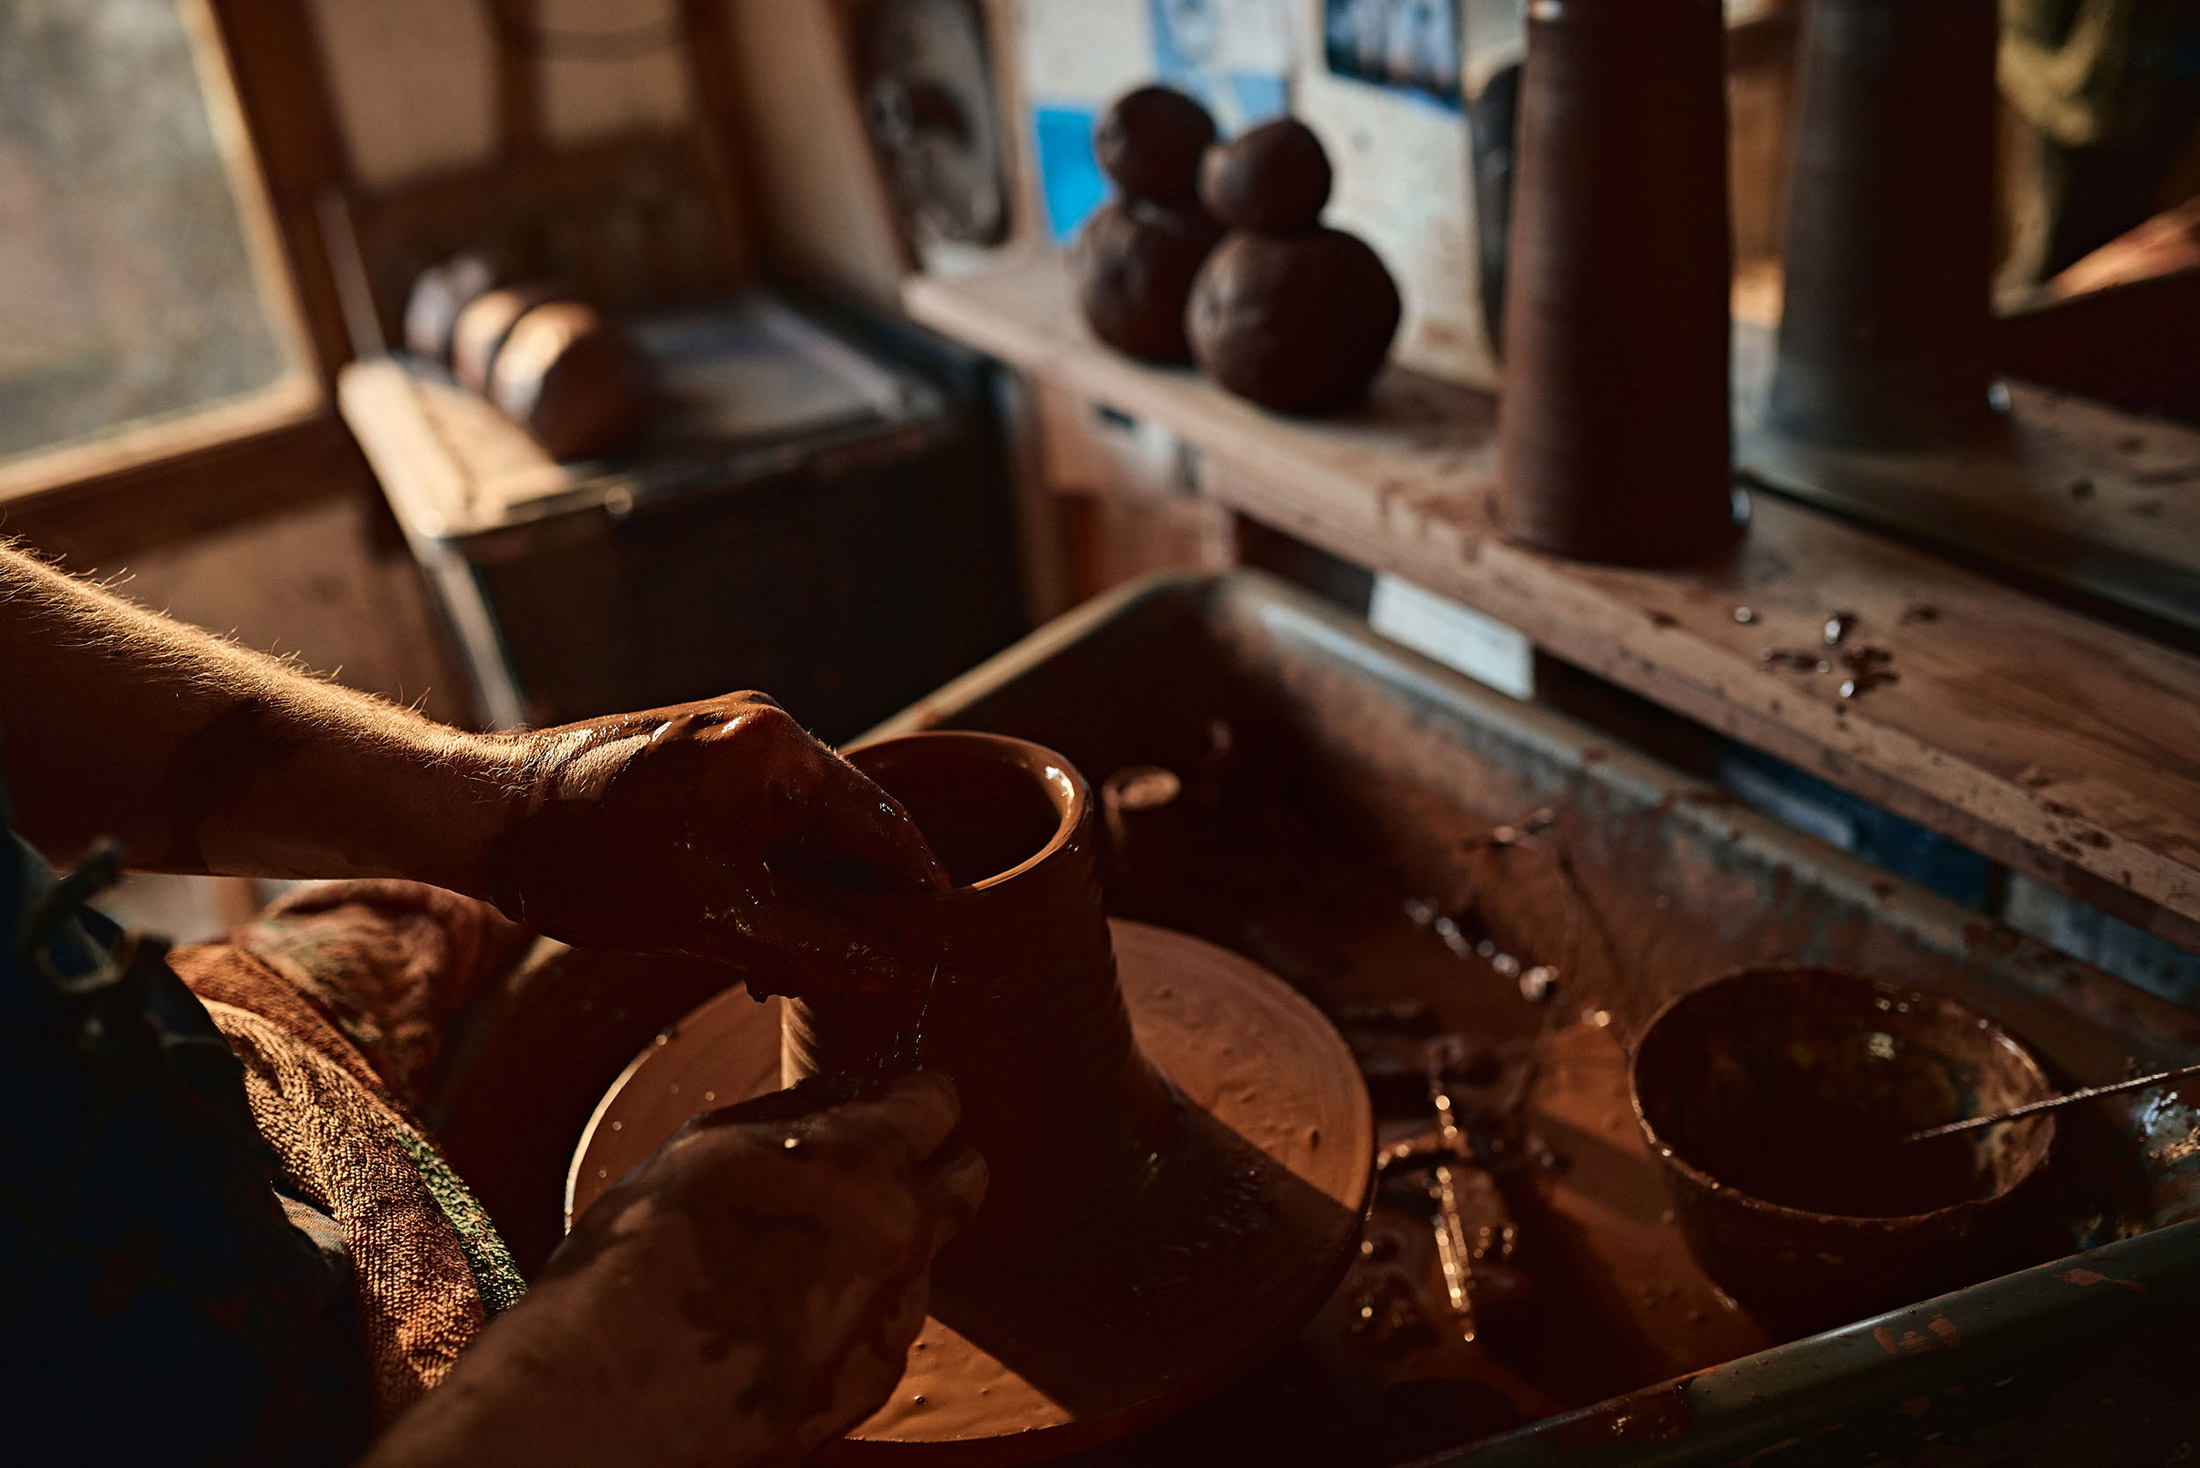 Creating pottery by hand